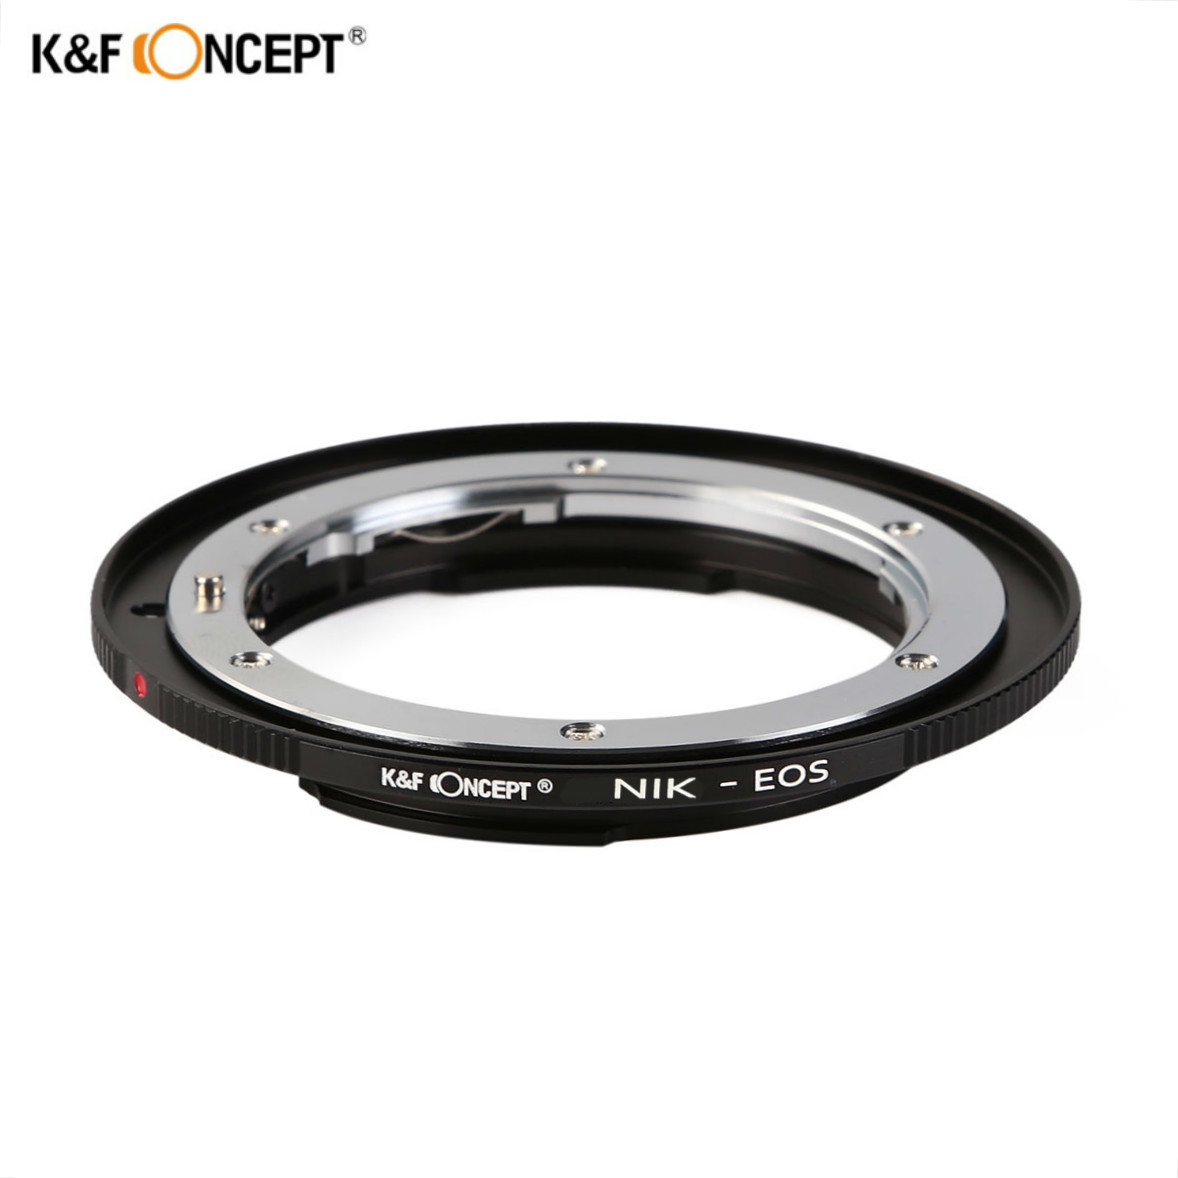 K&F CONCEPT Lens Adapter Ring For Nikon F AI Ai-S Lens To Canon EOS EF Camera 600D 60D 5D 500D